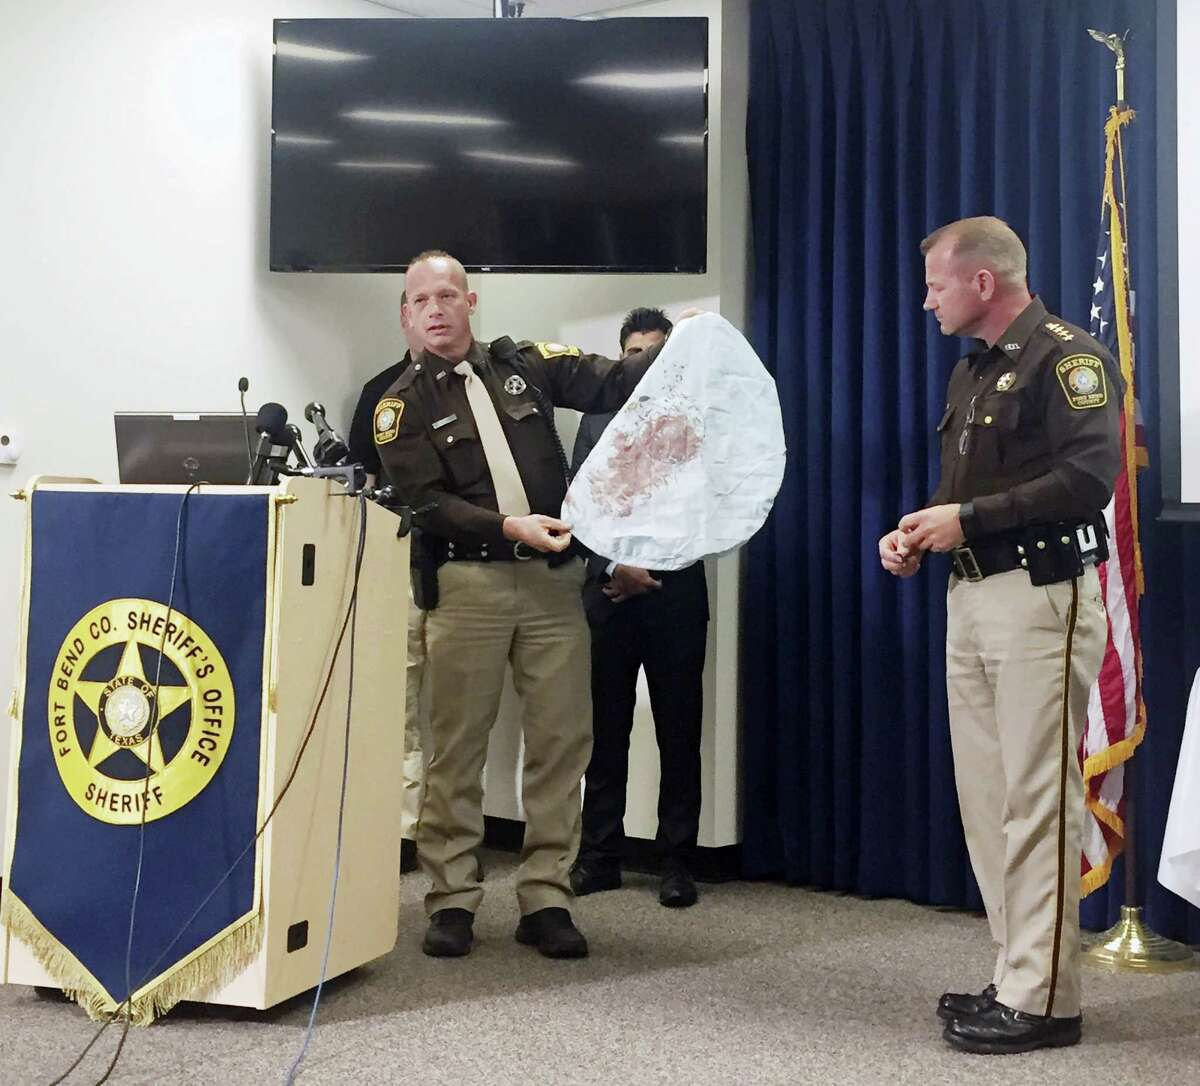 Deputy Danny Beckworth, who investigated the crash site, displays part of a defective airbag believed to have killed 17-year-old Huma Hanif during a news conference April 7 in Houston. The brother of a 17-year-old Texas girl who was killed last week when an exploding Takata air bag sent a shard of metal into her neck said he never received a recall notice about his 2002 Honda Civic.